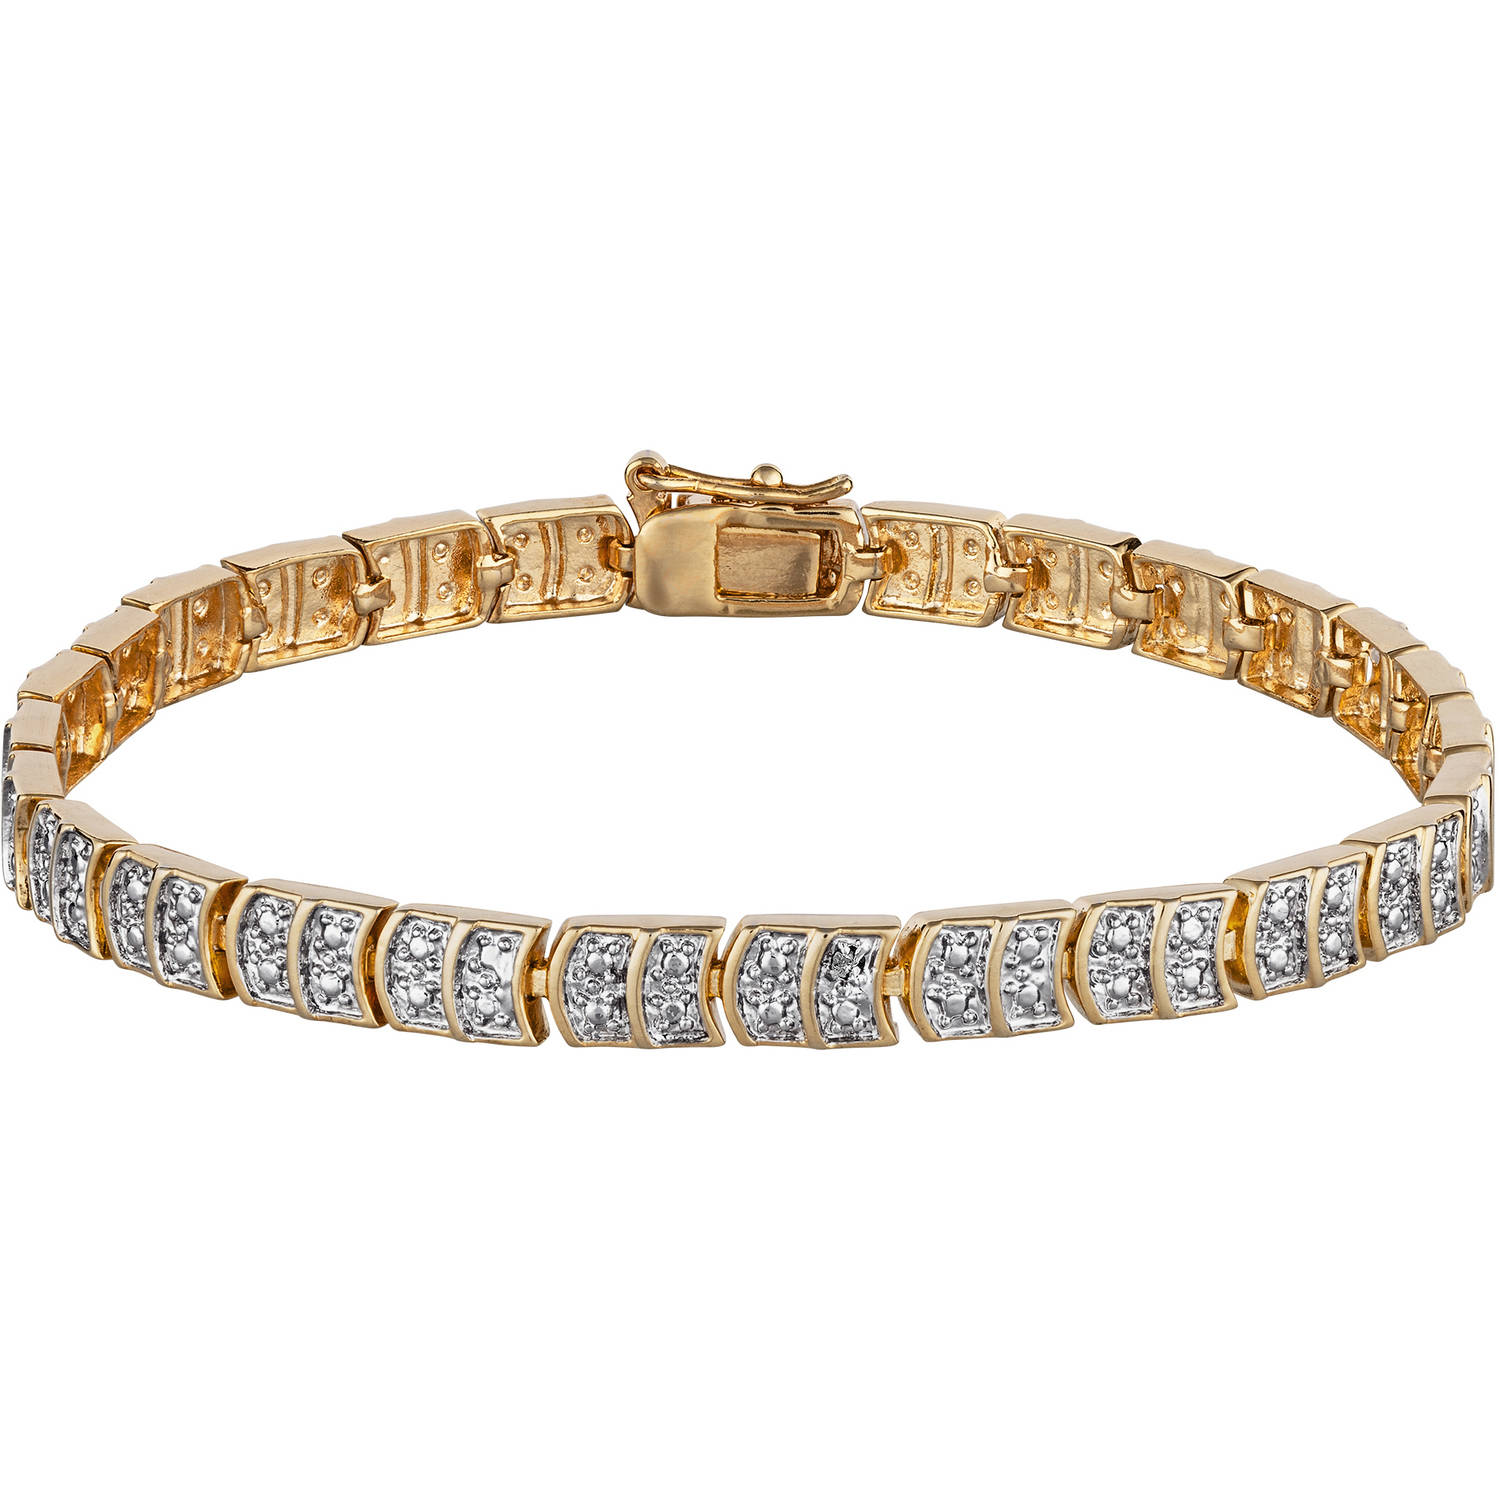 Diamond Accent 14kt Gold-Plated Tennis Bracelet, 7.5